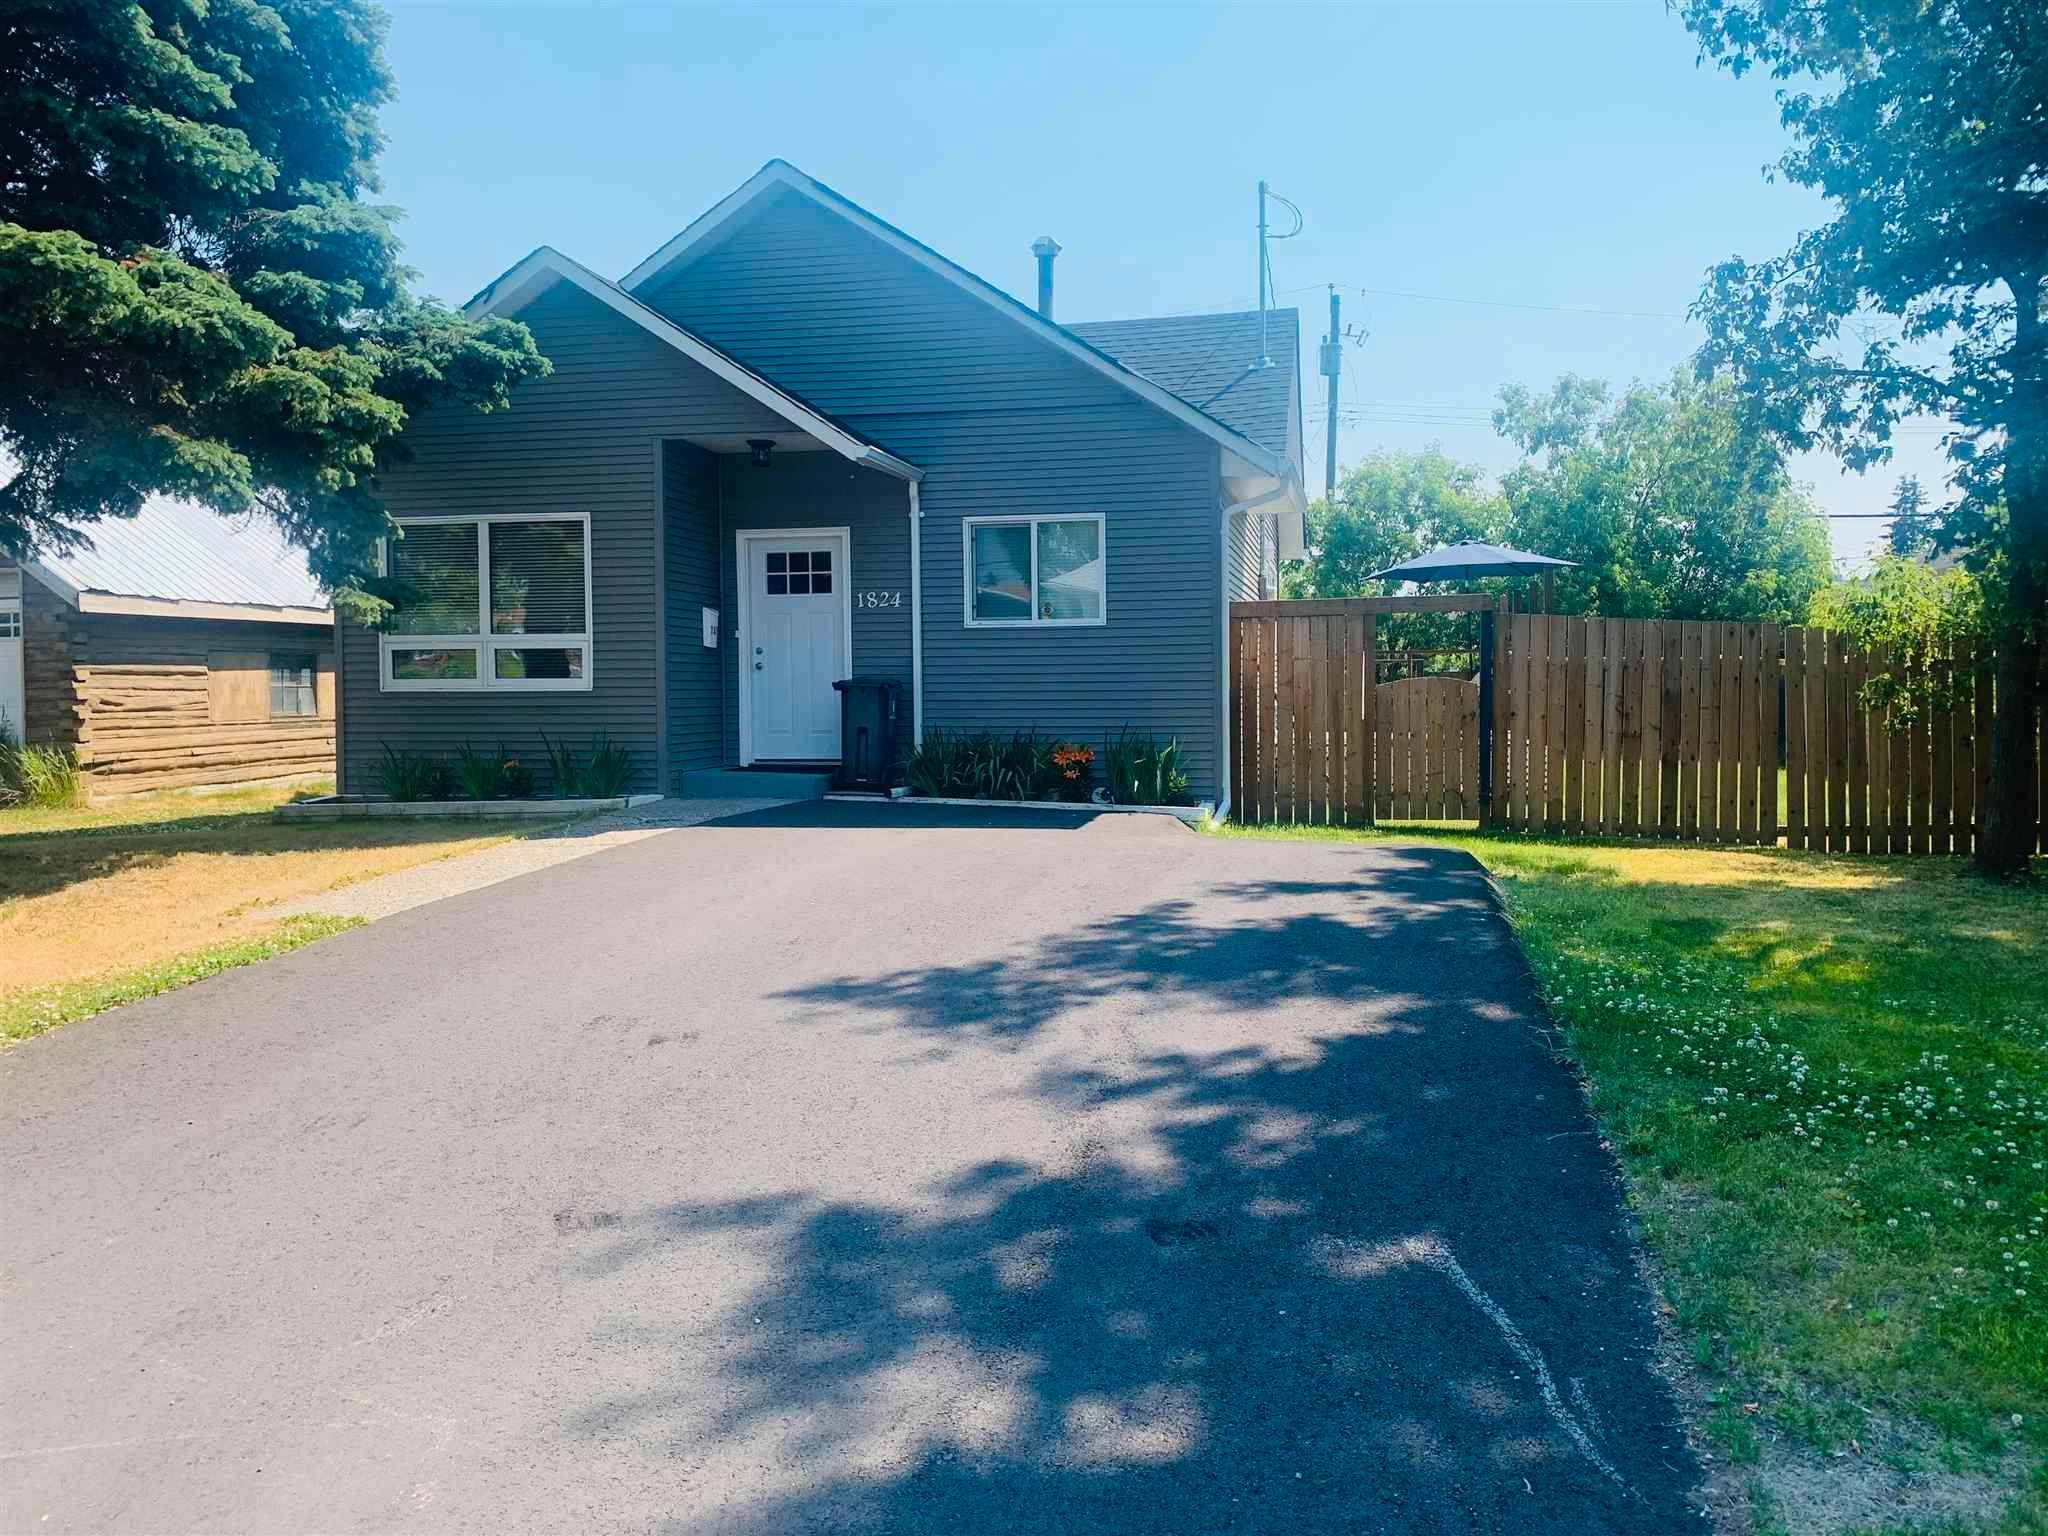 """Main Photo: 1824 UPLAND Street in Prince George: Van Bow House for sale in """"VAN BOW"""" (PG City Central (Zone 72))  : MLS®# R2599638"""